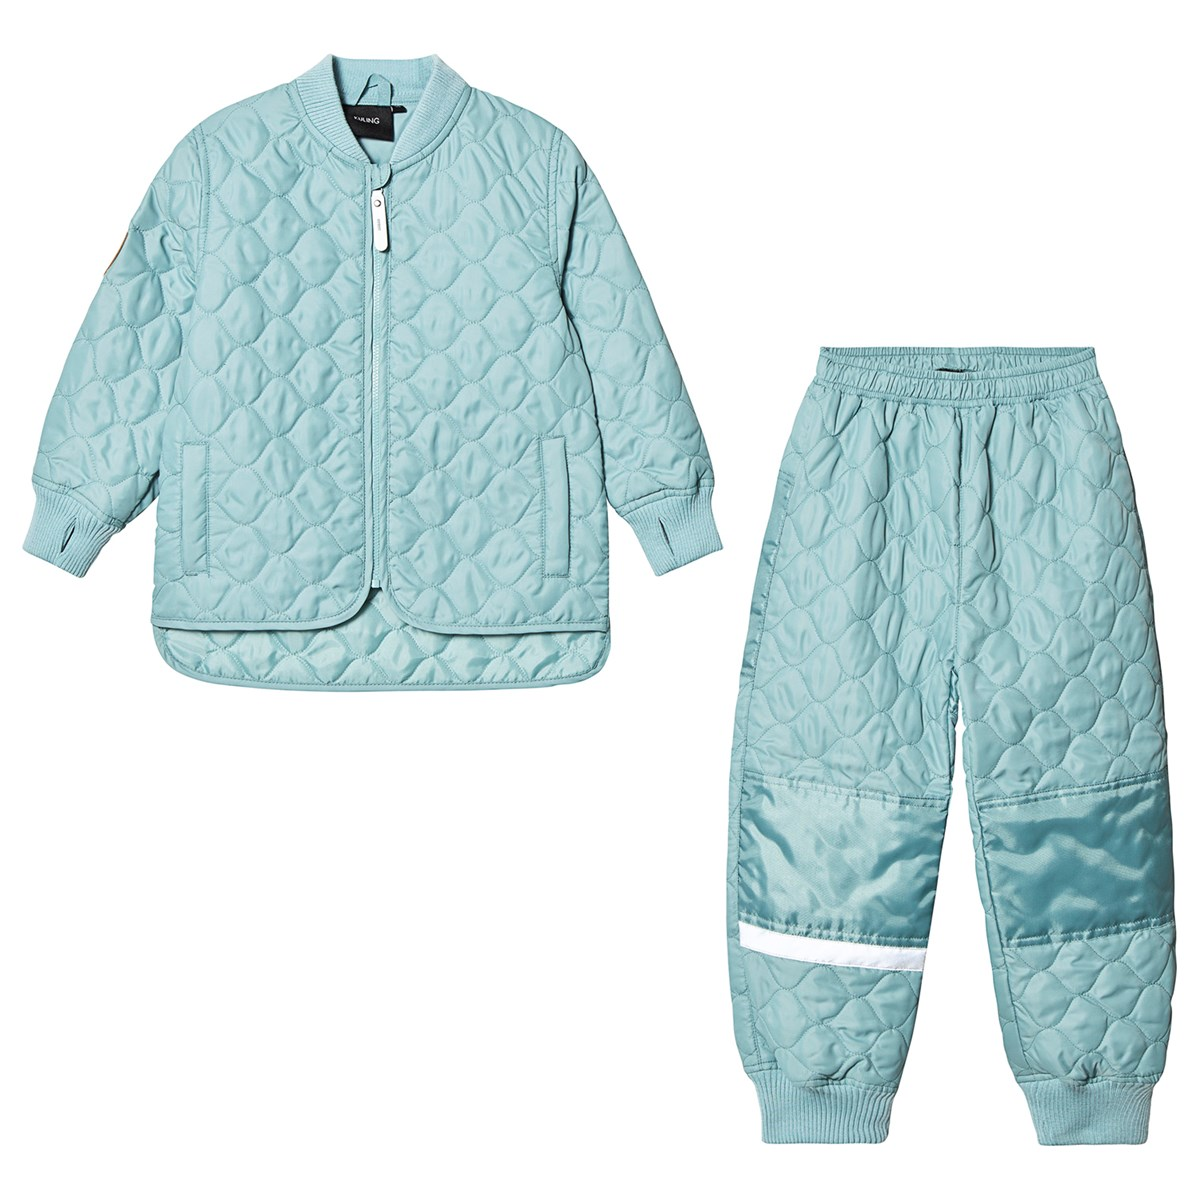 Kuling Charmy Turquoise Thermal Set